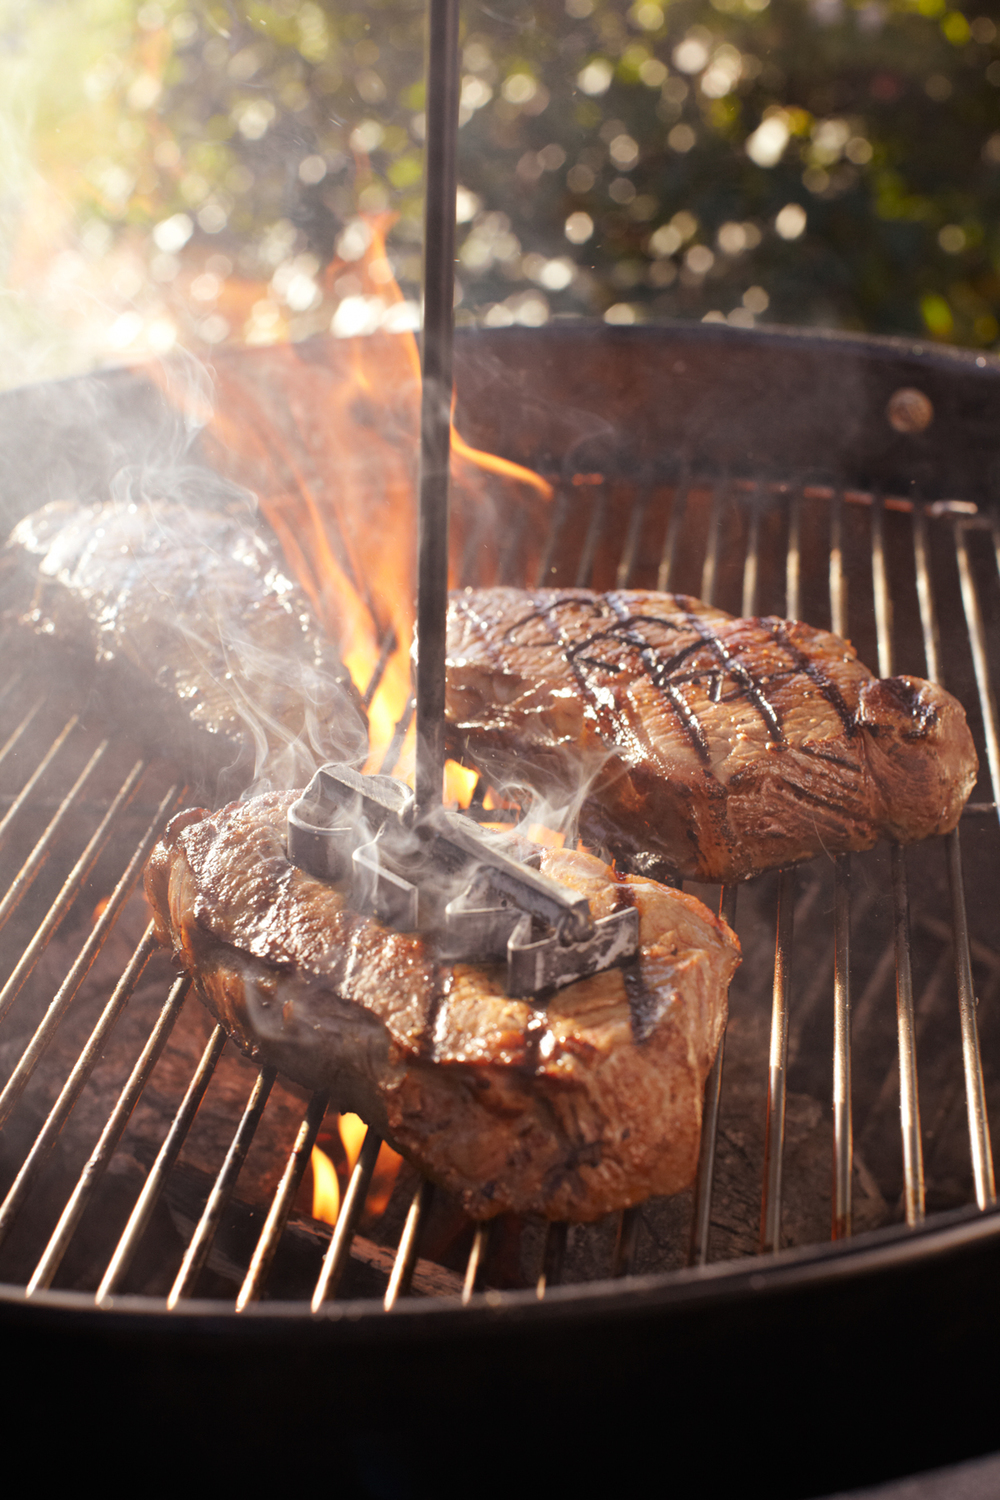 80_WS_beauty_steaks_0645.jpg